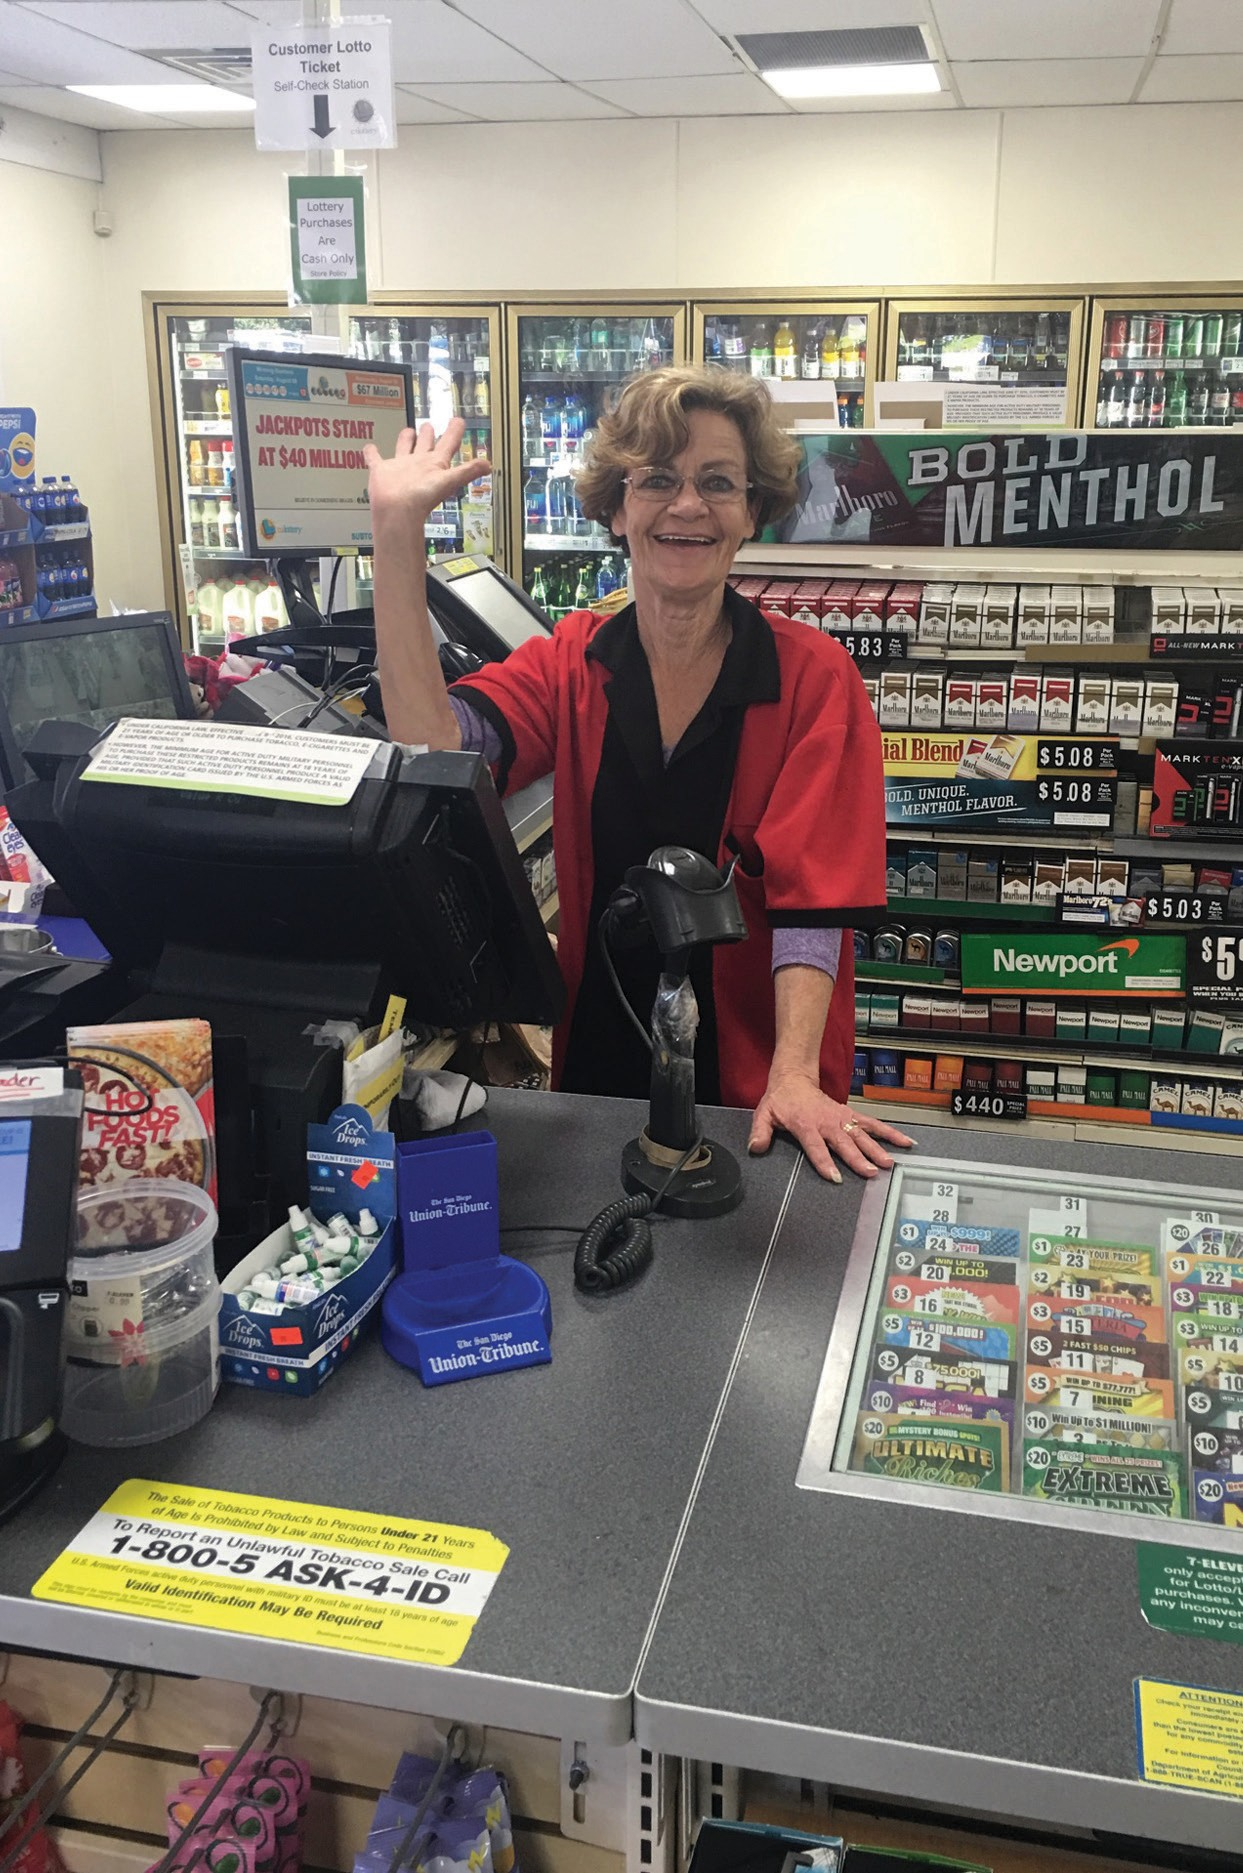 Dorothy Glum during her last week of work at 7-11 before leaving to move to Florida.